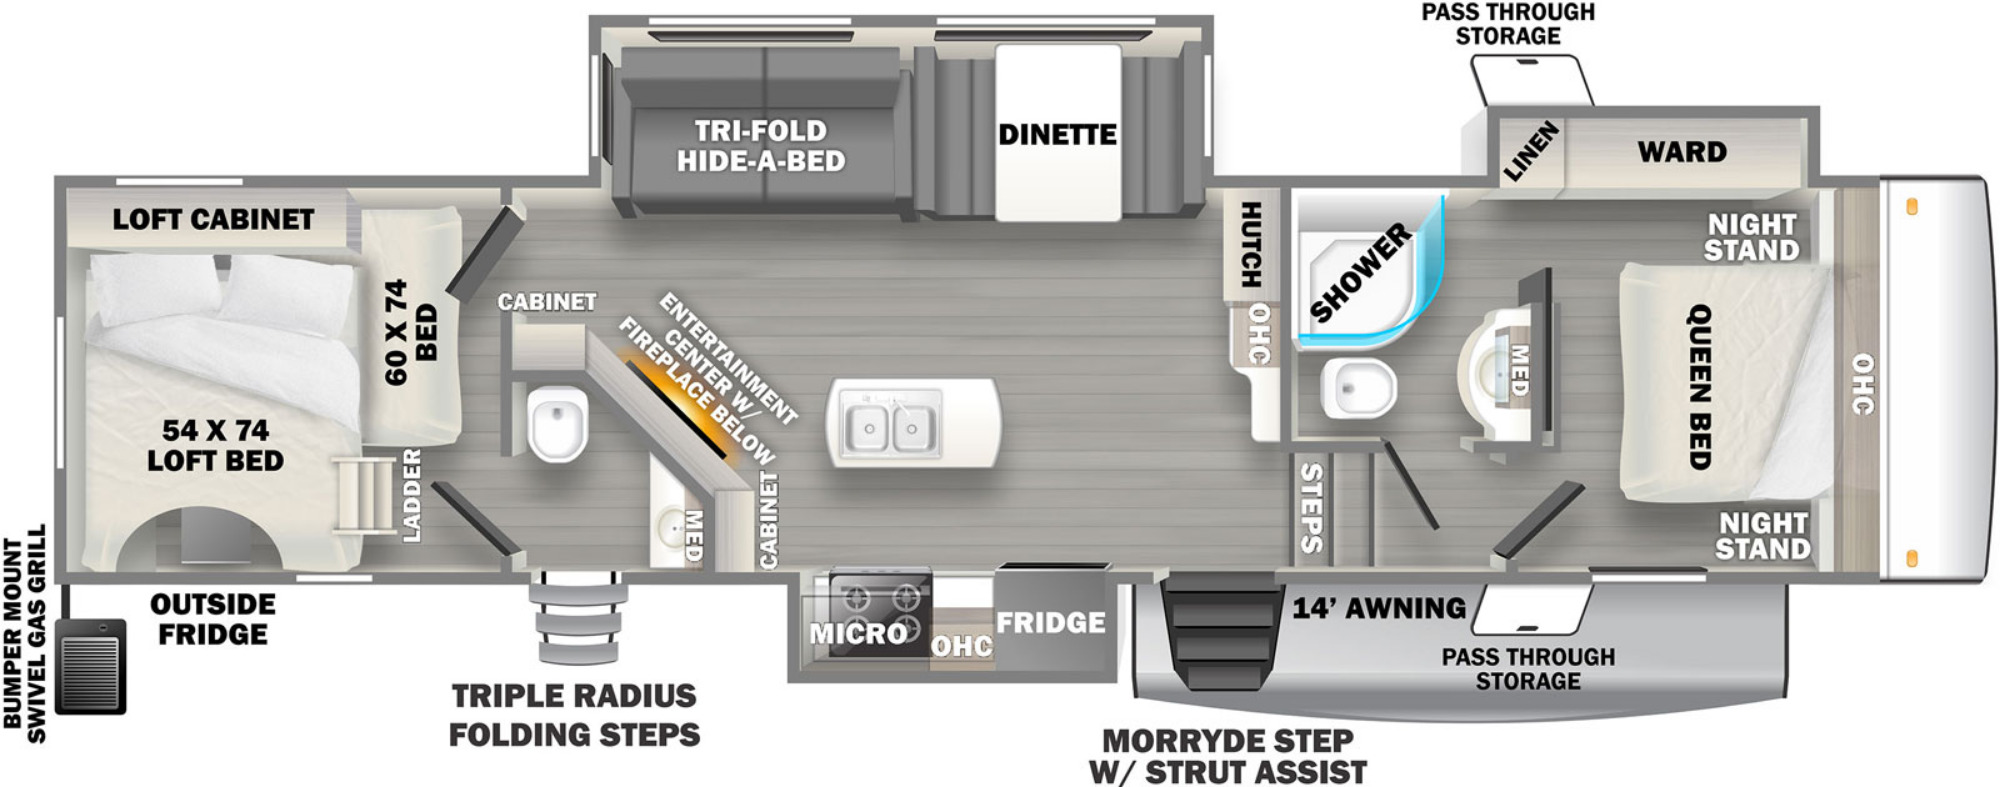 View Floor Plan for 2021 FOREST RIVER SANDPIPER 3440BH